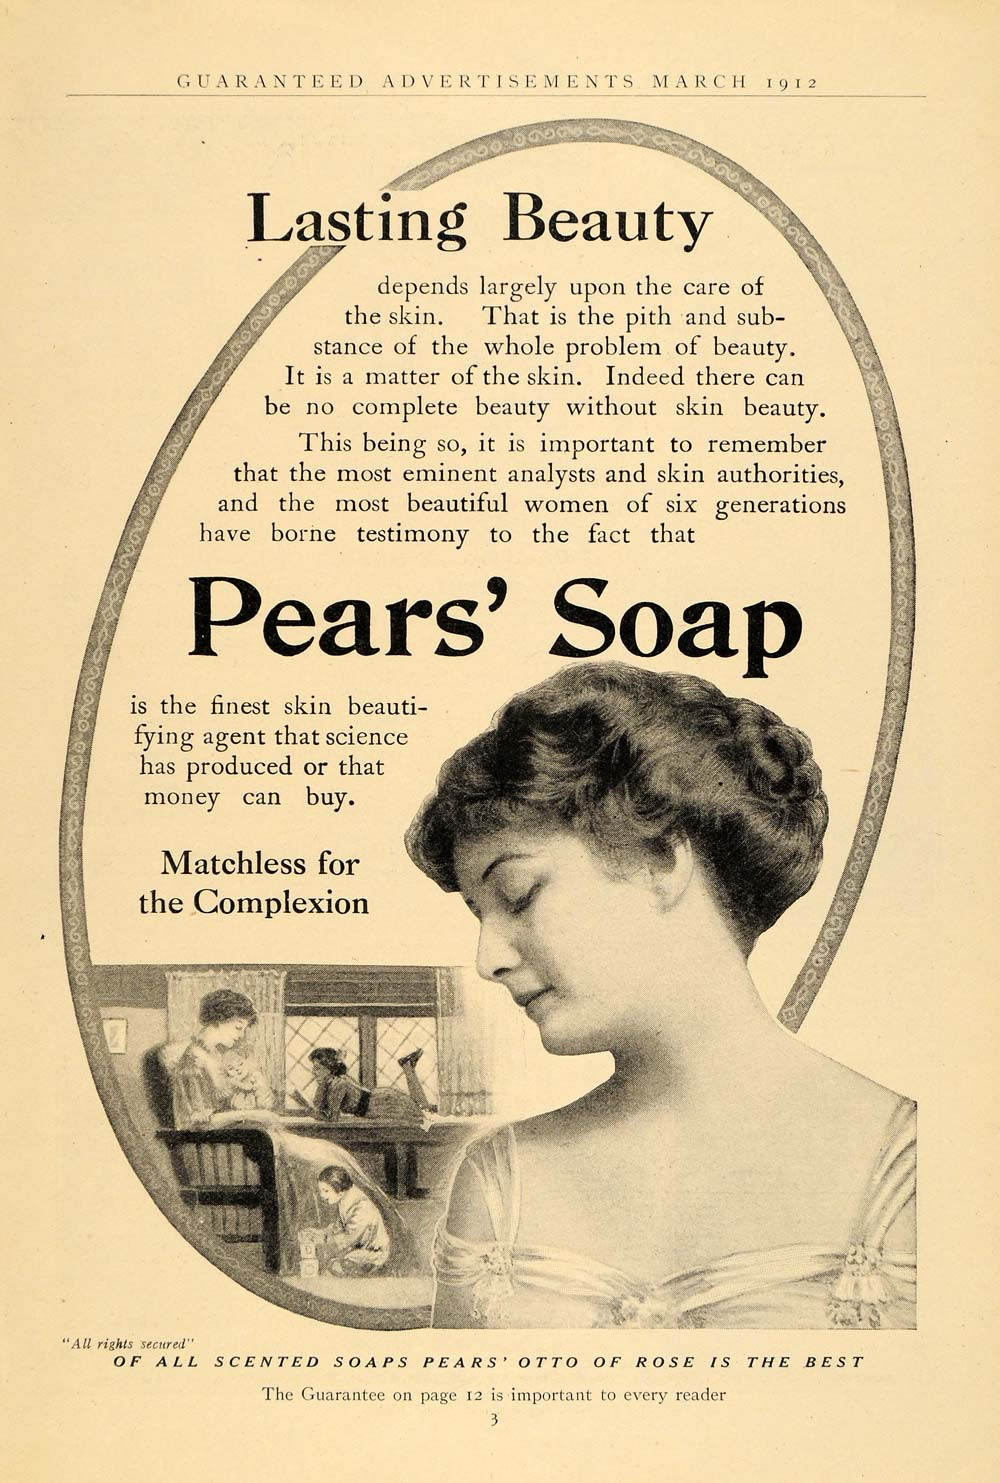 1912 Ad Pears' Otto Rose Scented Toilet Bath Soap - ORIGINAL ADVERTISING GH2